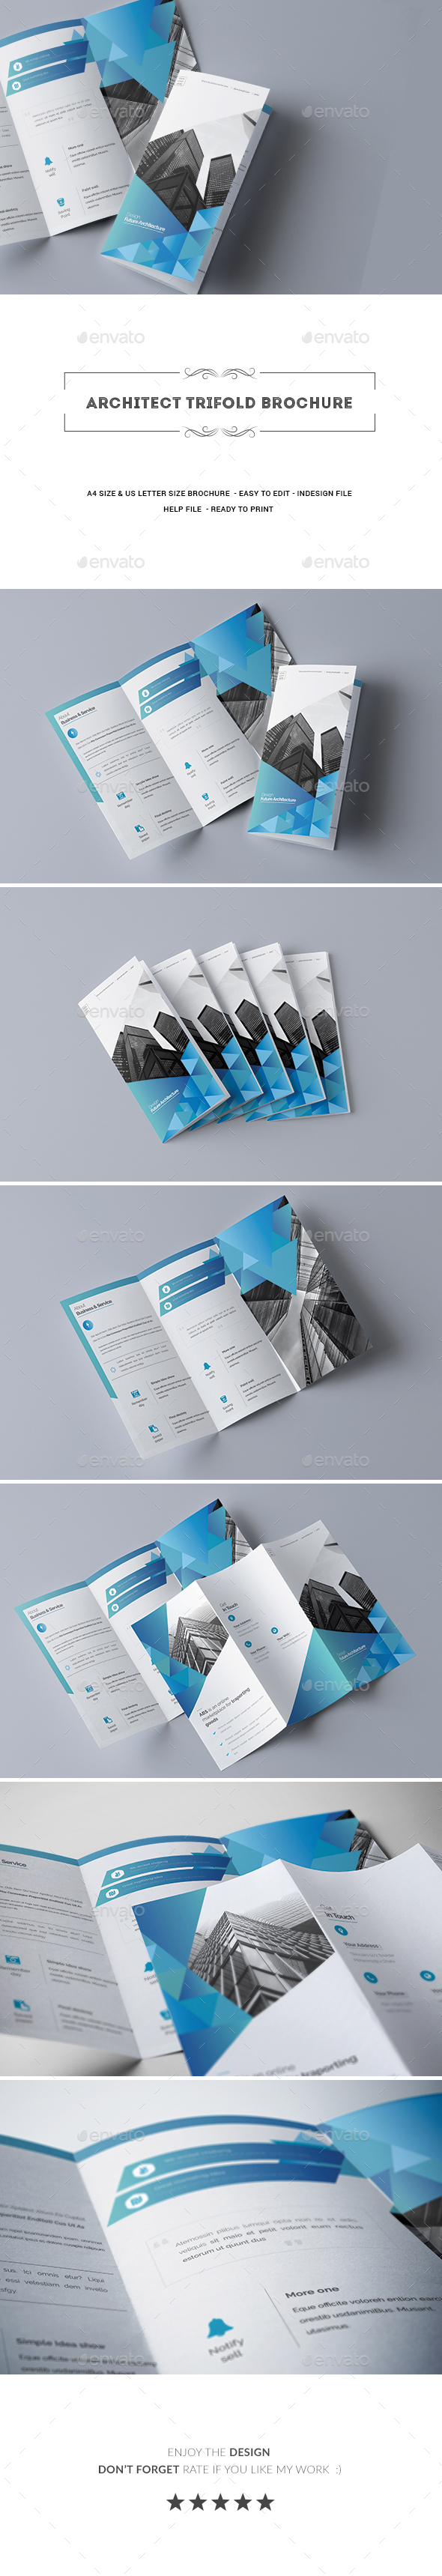 Architect Trifold Brochure - Brochures Print Templates